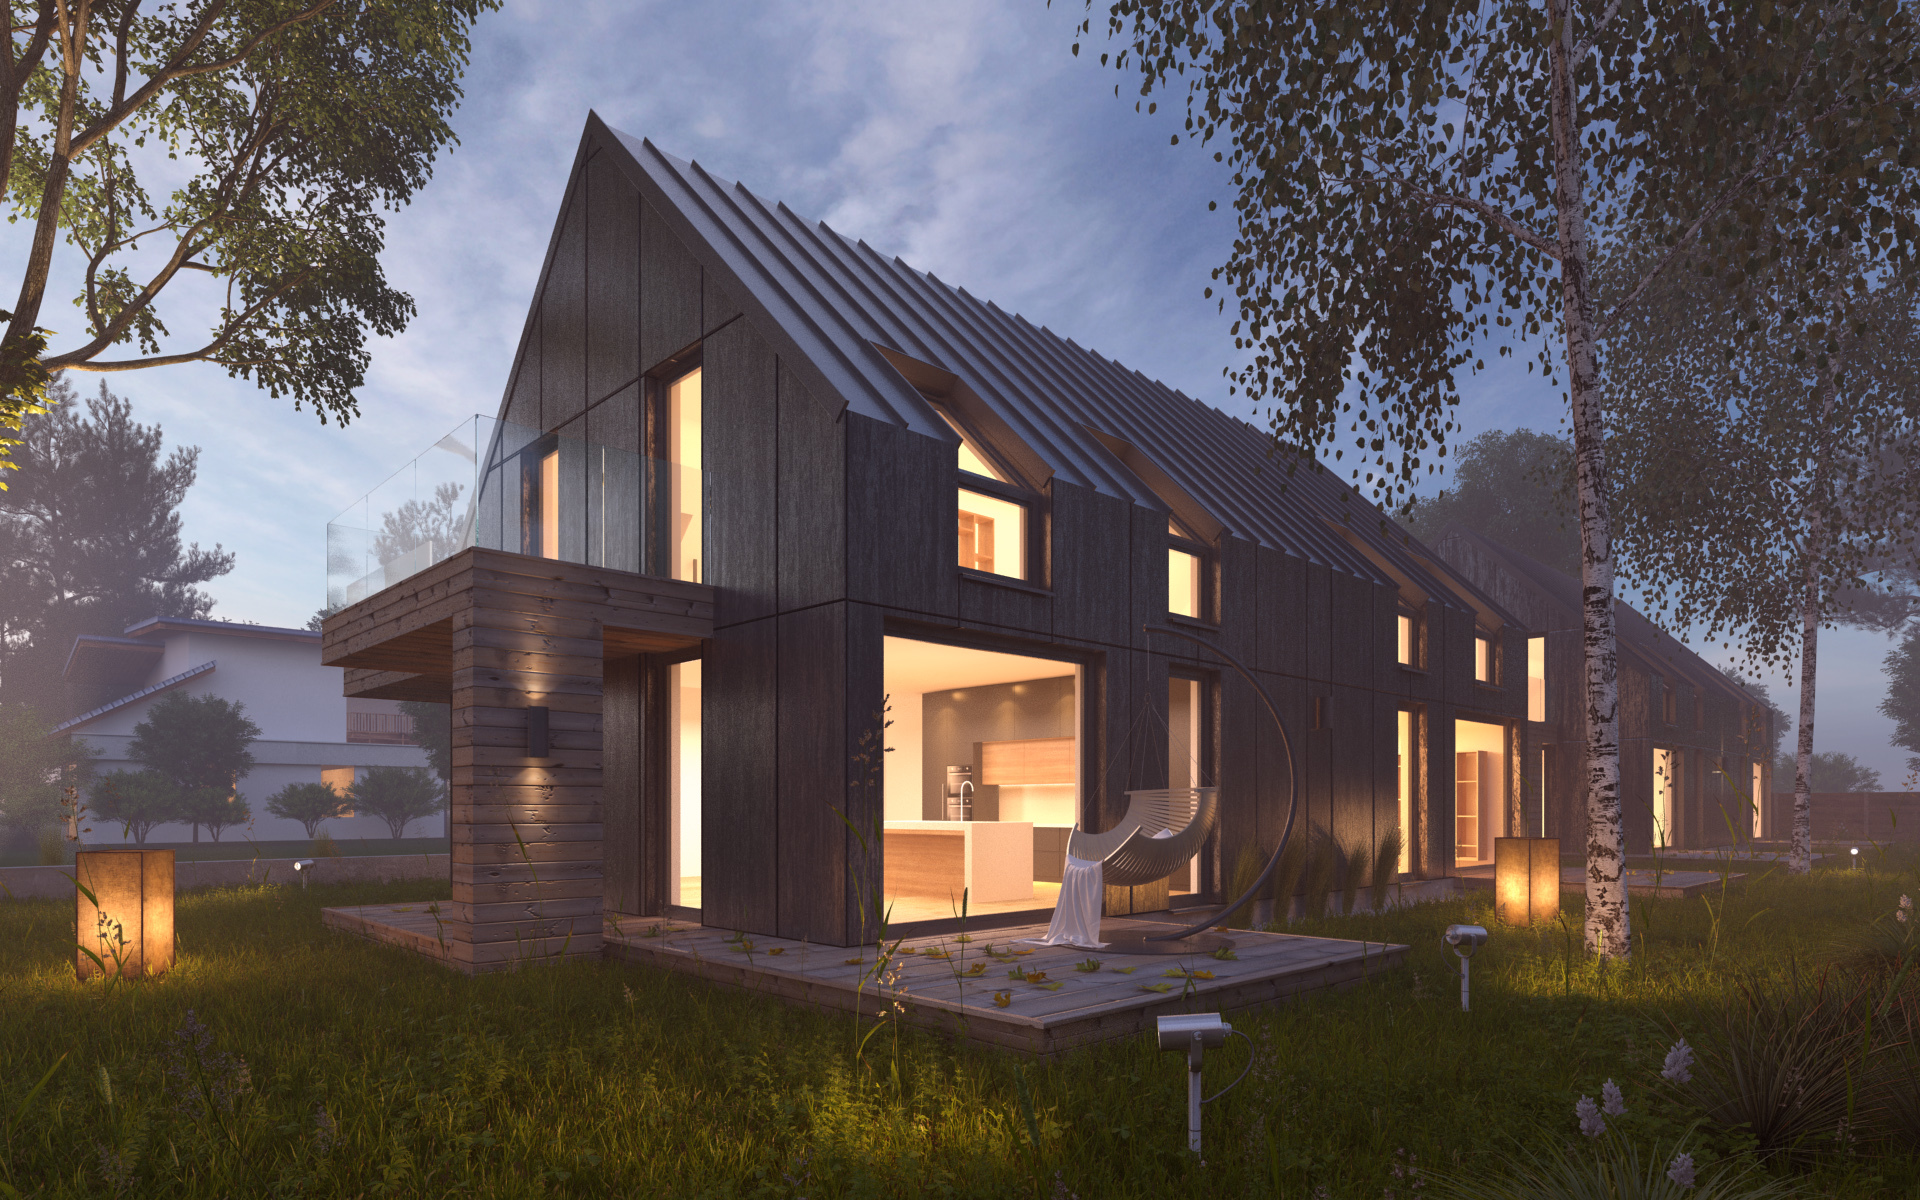 Vray Night Scene Rendering Modern House By Visualcg 3docean